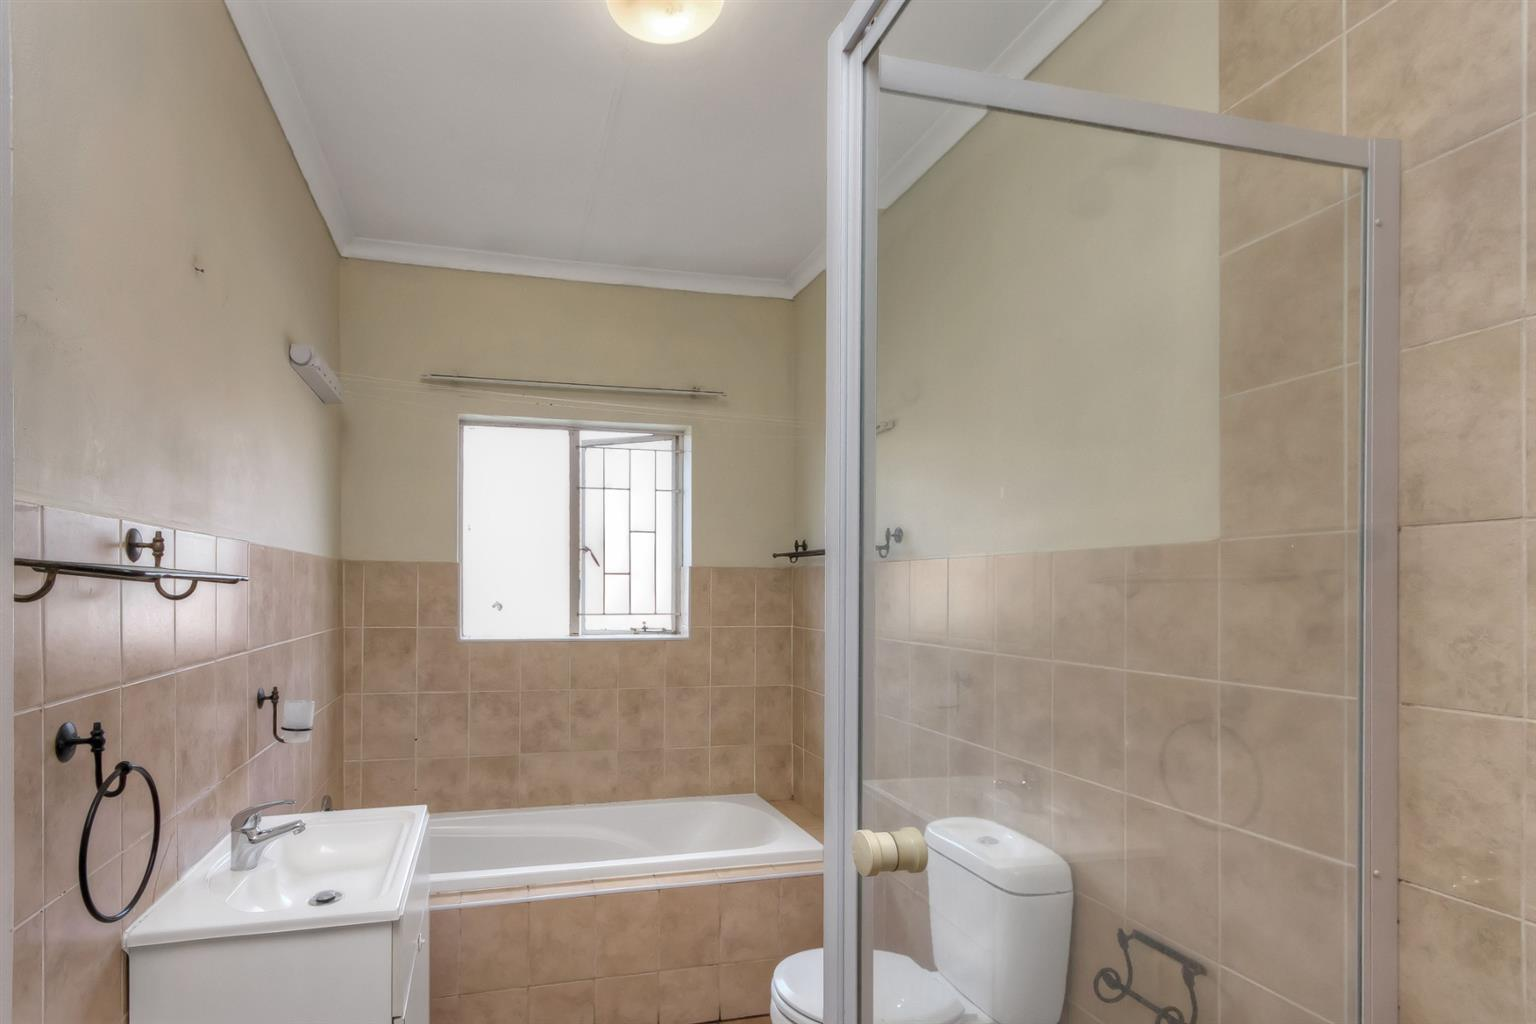 House For Sale in North Riding